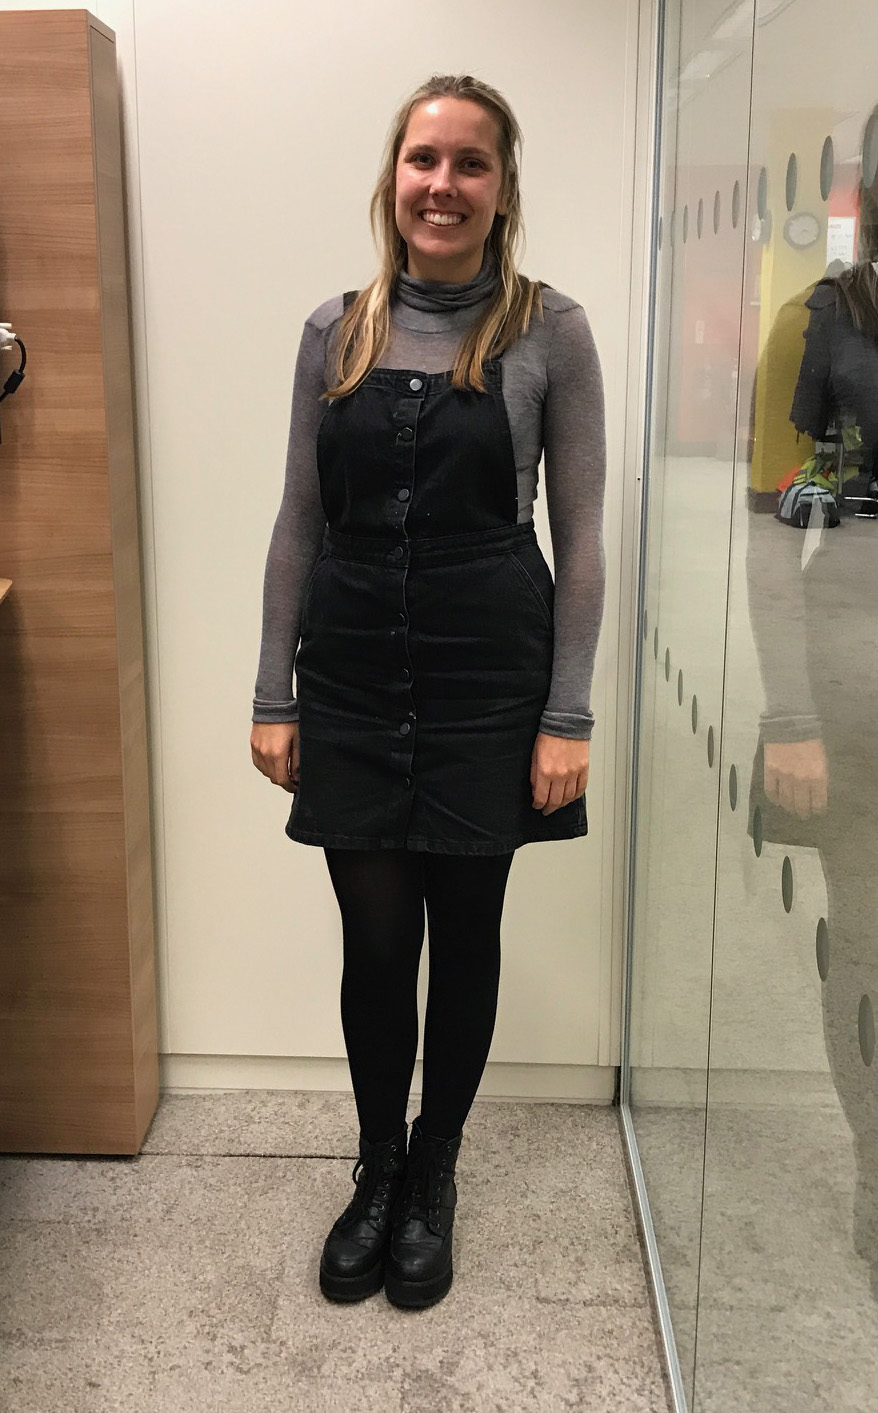 model wears grey turtle neck jumper from 10store.com with her own clothes